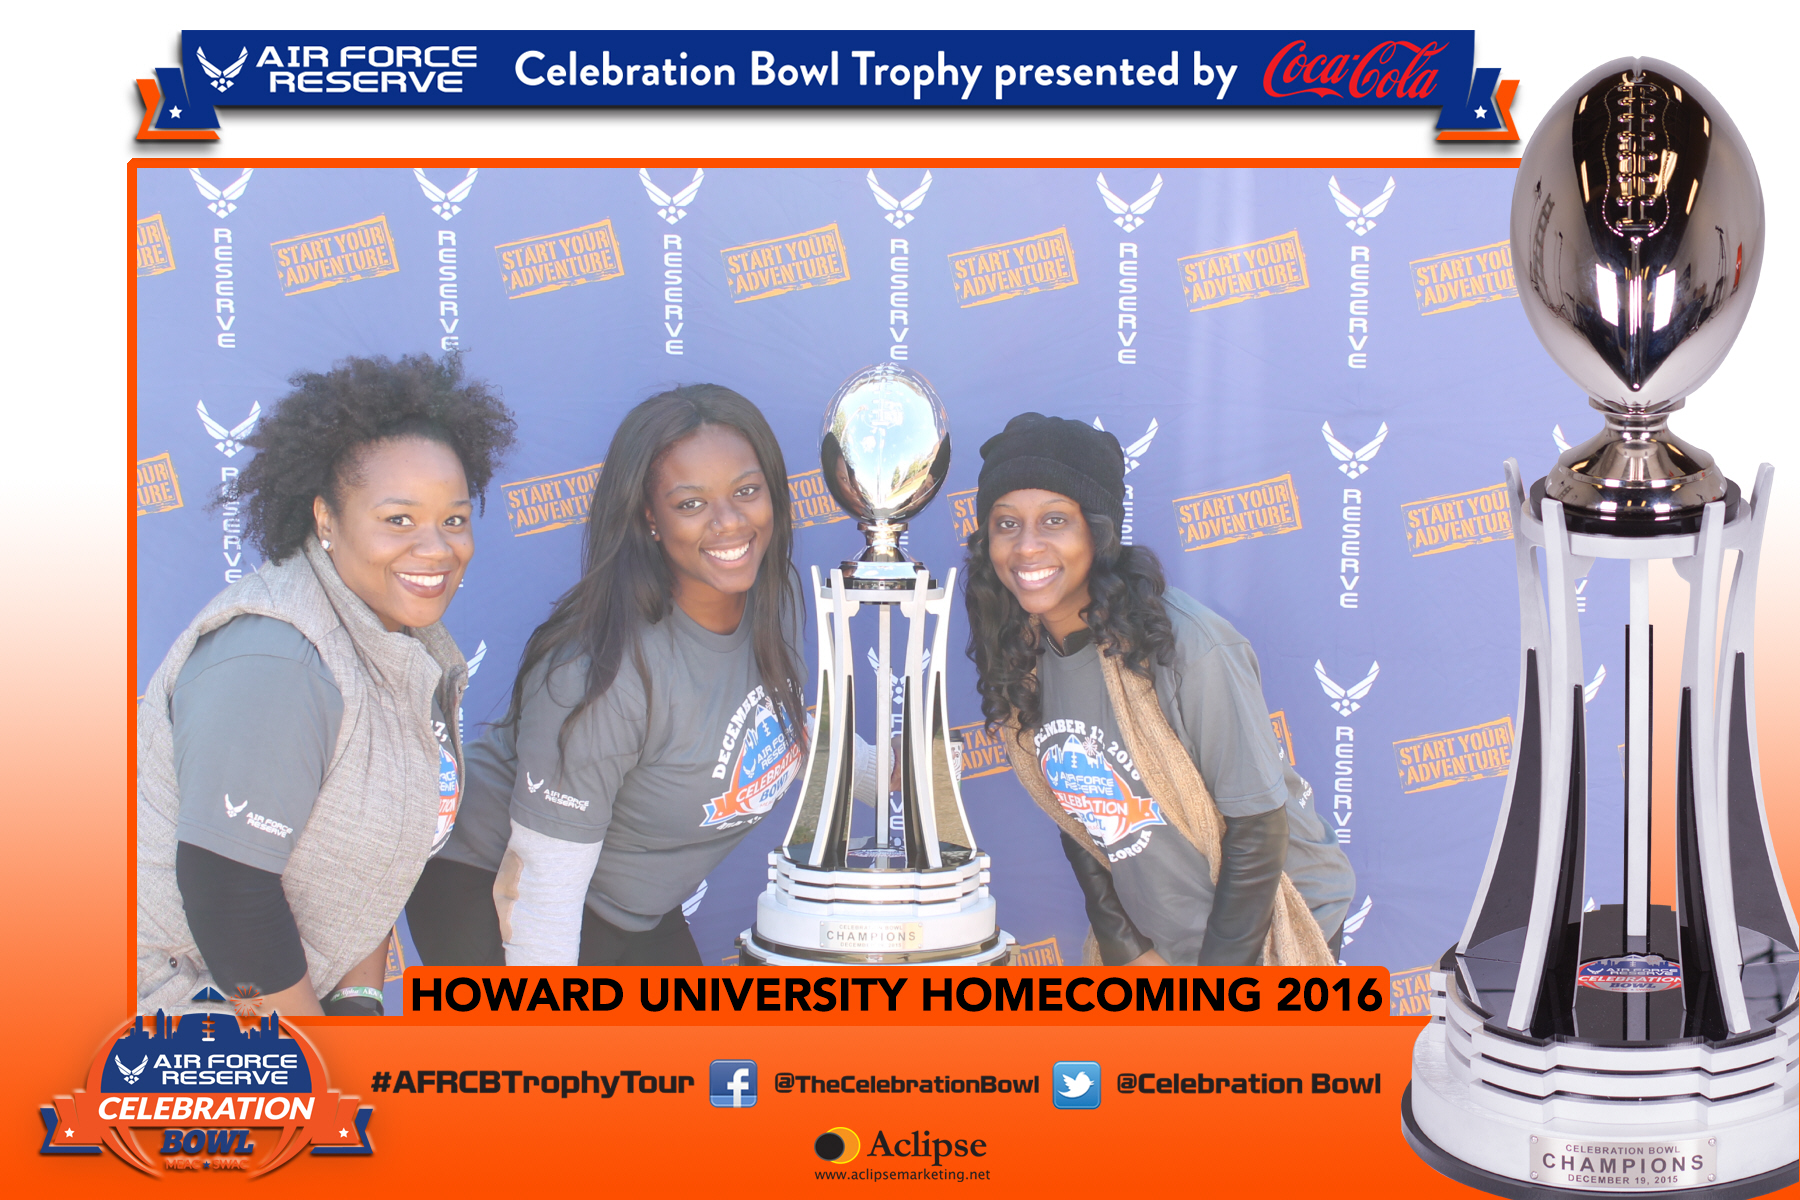 Air Force Reserve Howard Homecoming